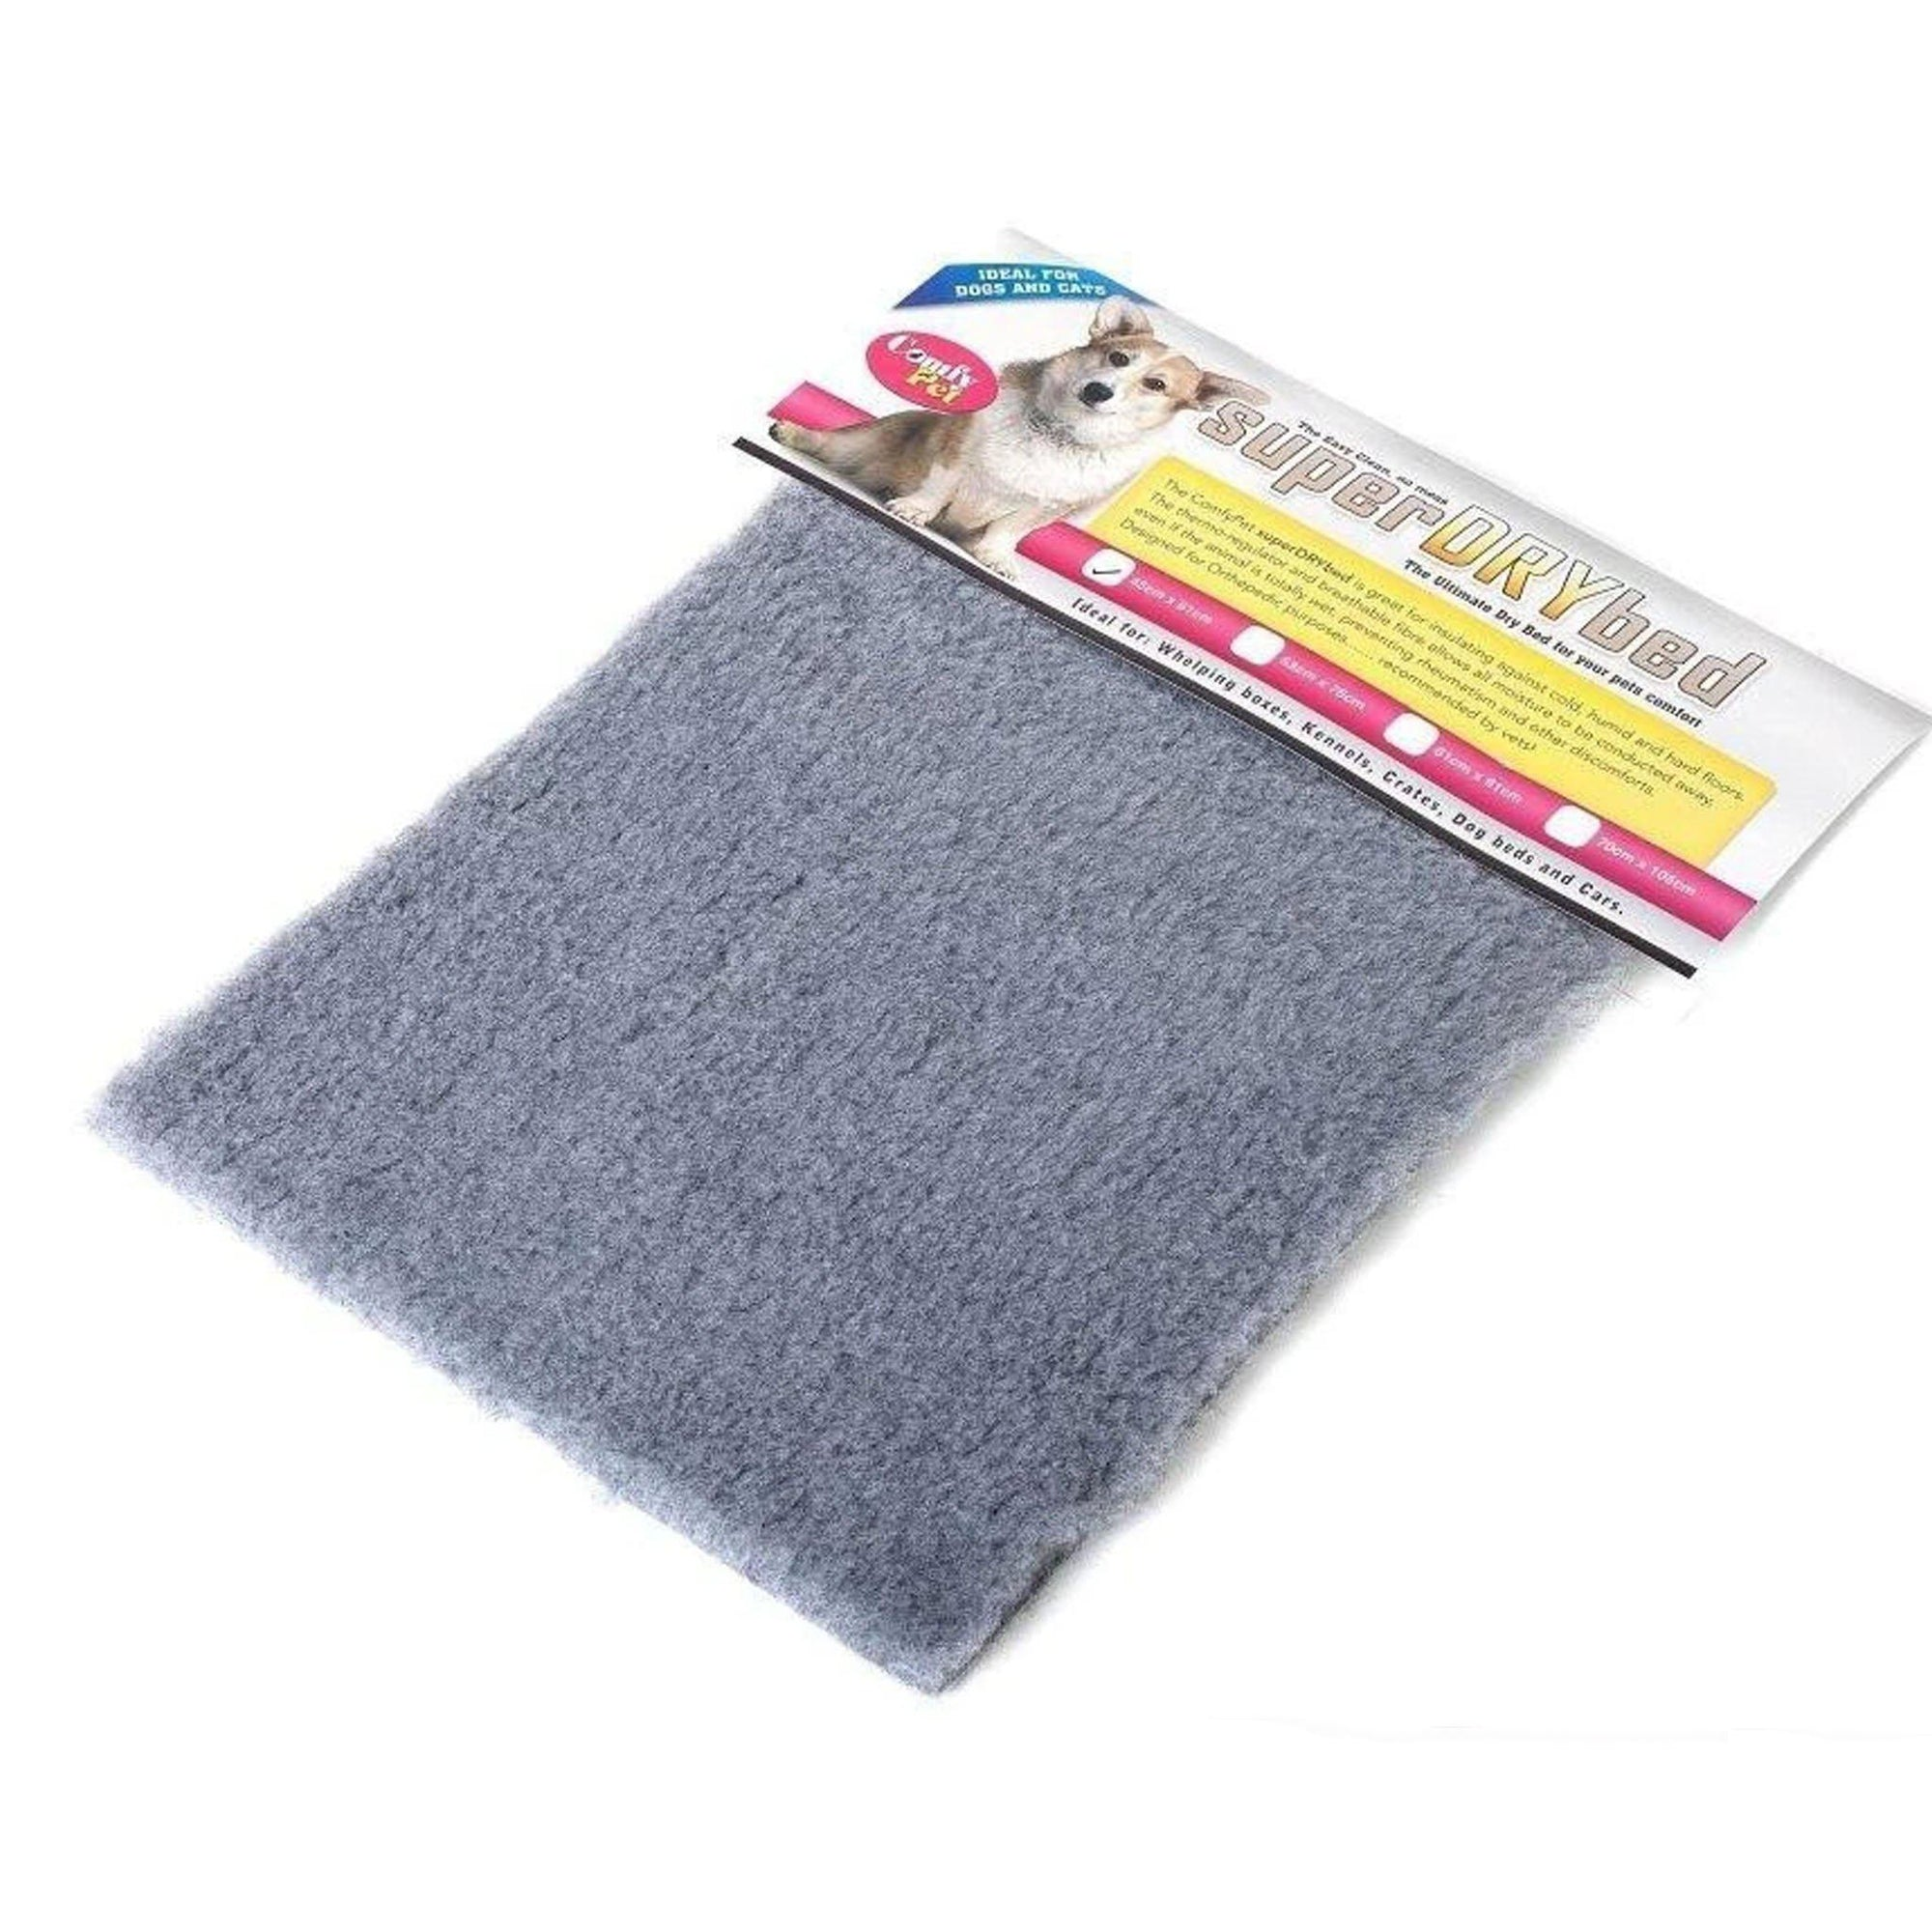 Drybed - ComfyPet Products